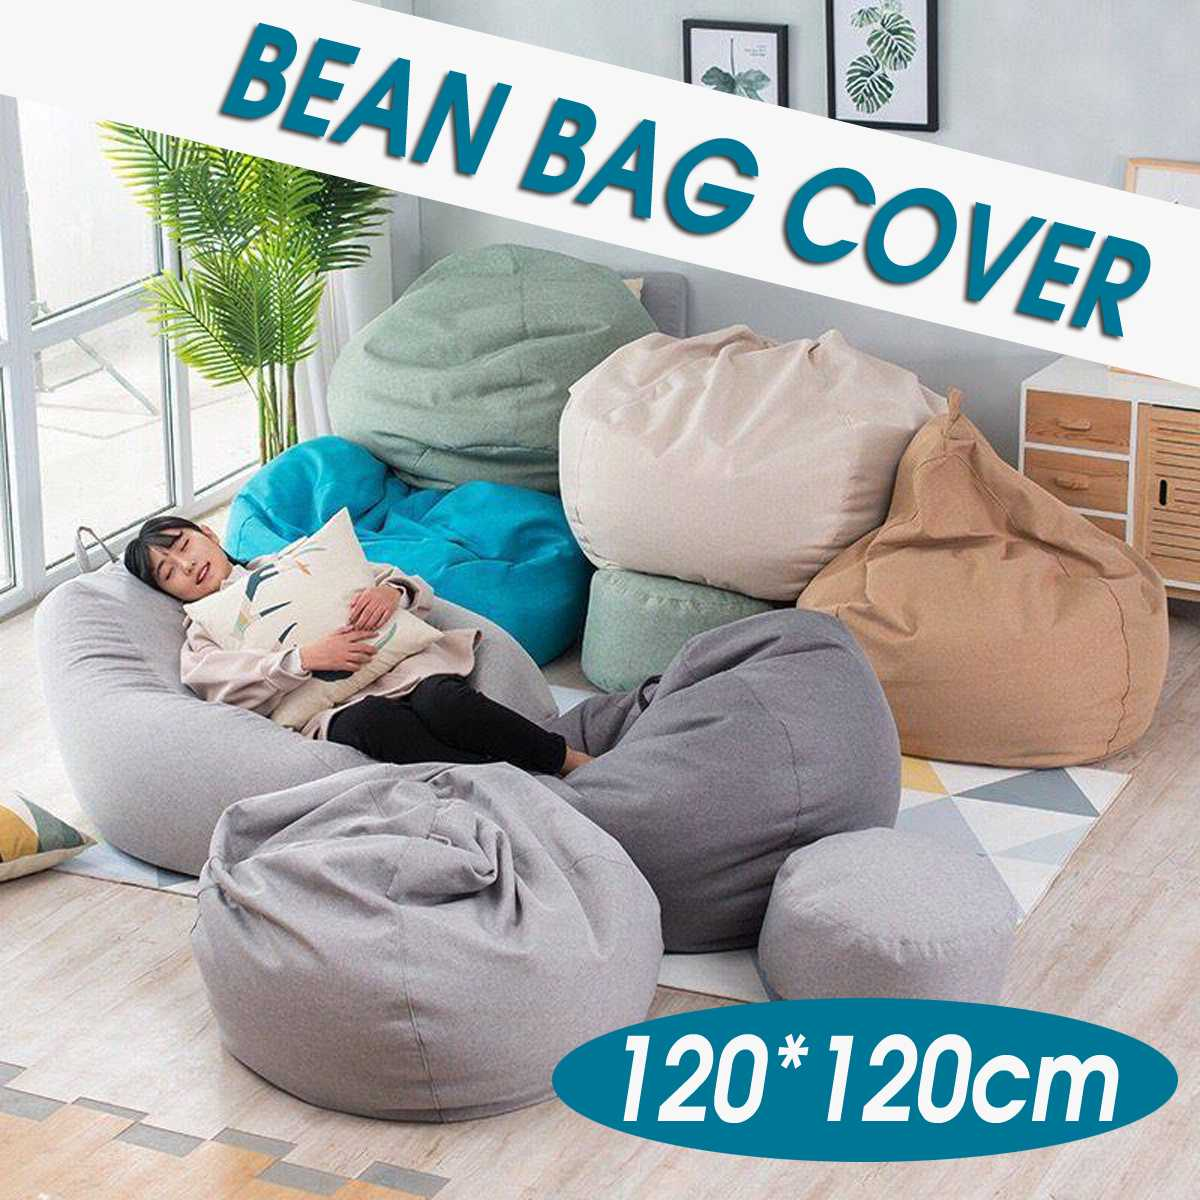 120x120CM Large Bean Bag Sofa Chair Cover Lounger Ottoman Seat Living Room Furniture Beanbag Bed Pouf Puff Couch Lazy Tatami120x120CM Large Bean Bag Sofa Chair Cover Lounger Ottoman Seat Living Room Furniture Beanbag Bed Pouf Puff Couch Lazy Tatami